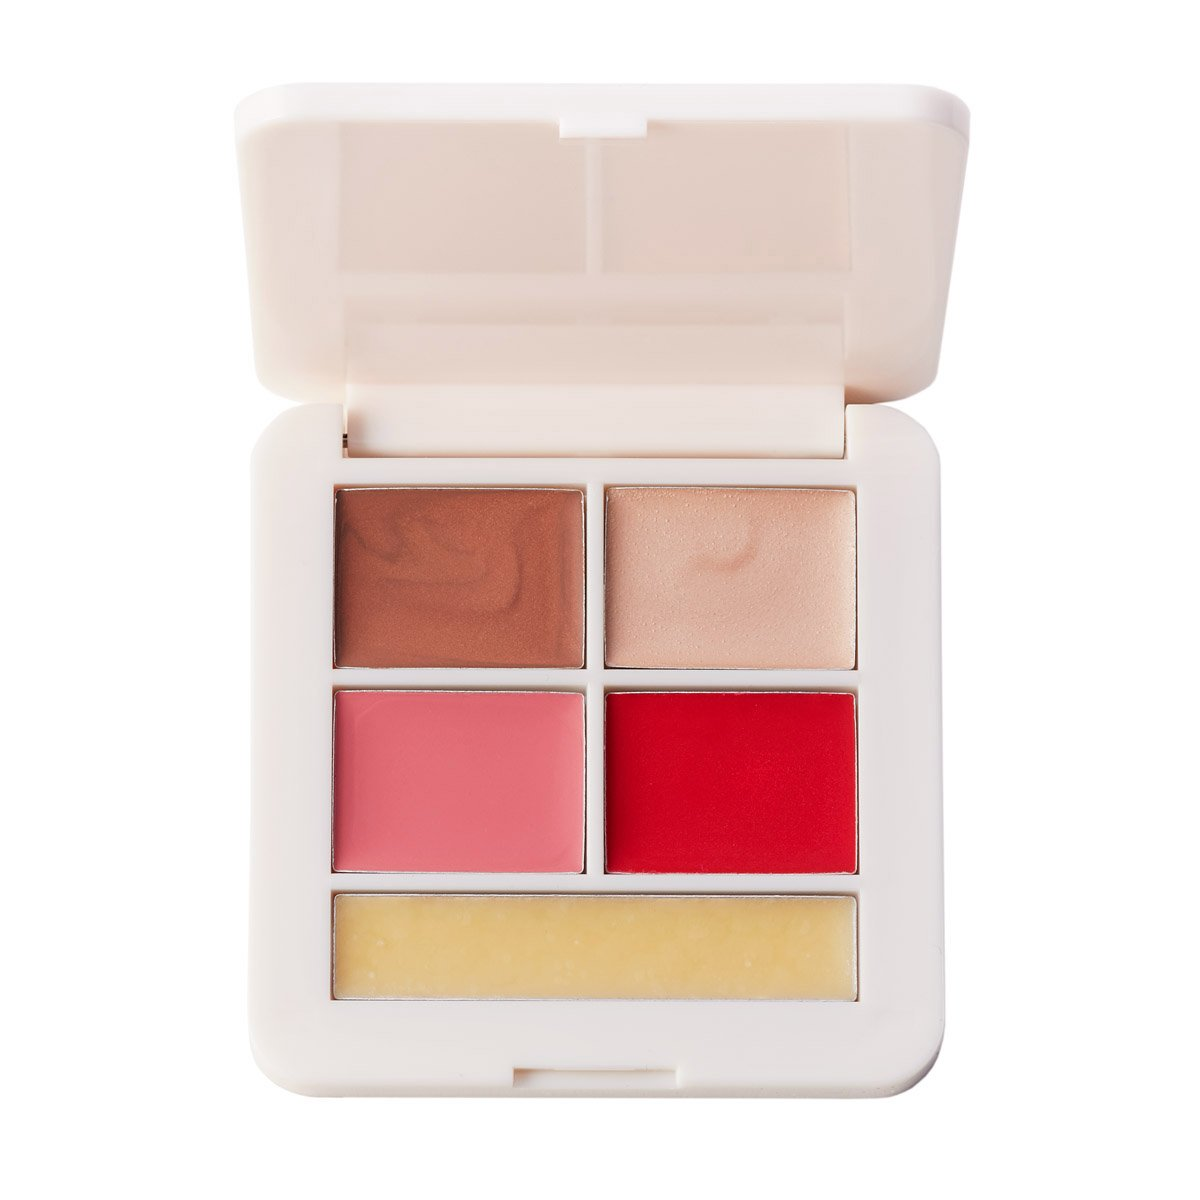 RMS Beauty Signature Set (Pop). Organic Makeup Palette for Natural Skincare. by RMS Beauty (Image #1)